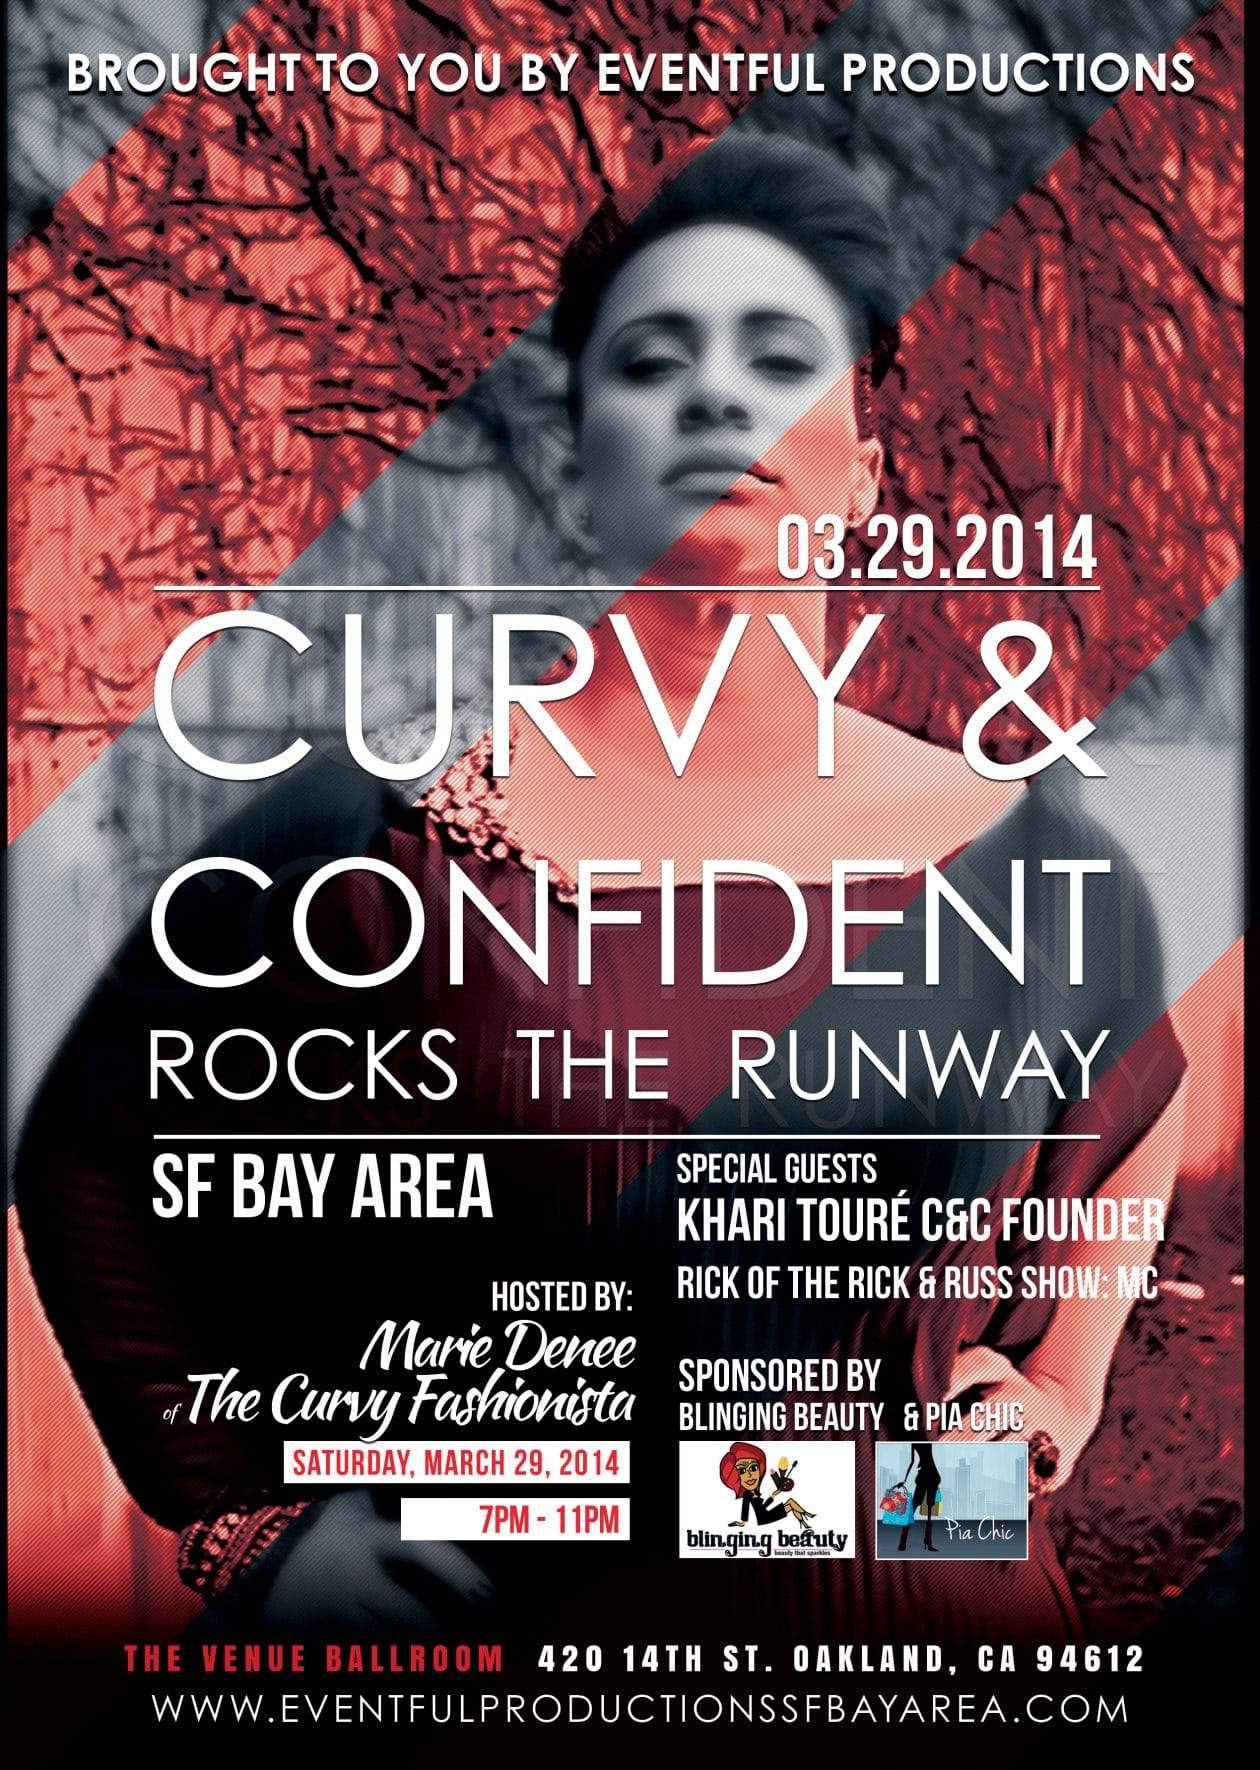 #BAYAREA: Save the Date for Curvy & Confident Rocks the Runway